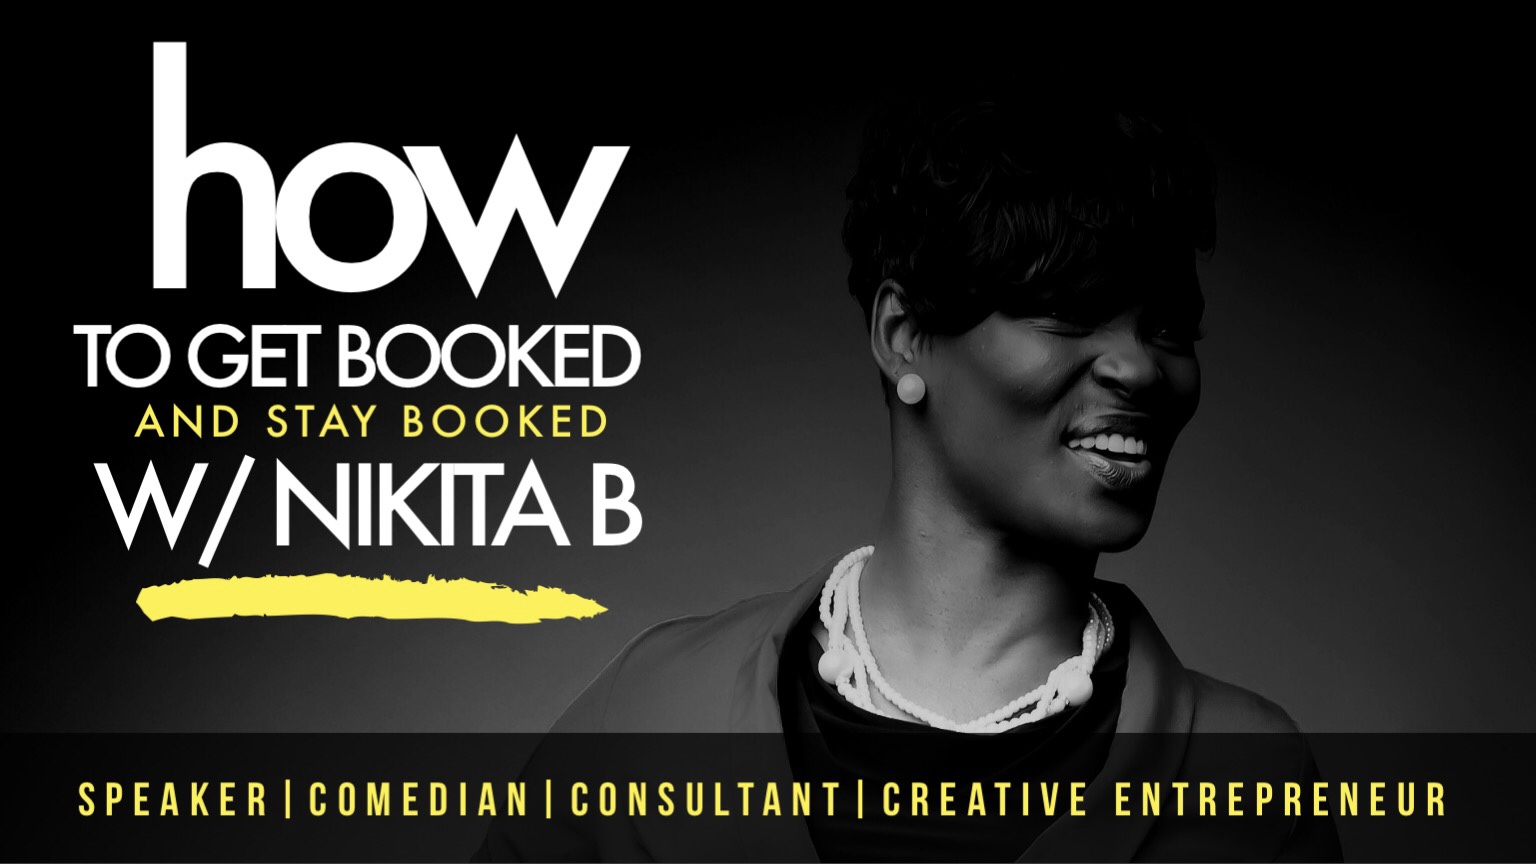 How to get booked with Nikita B